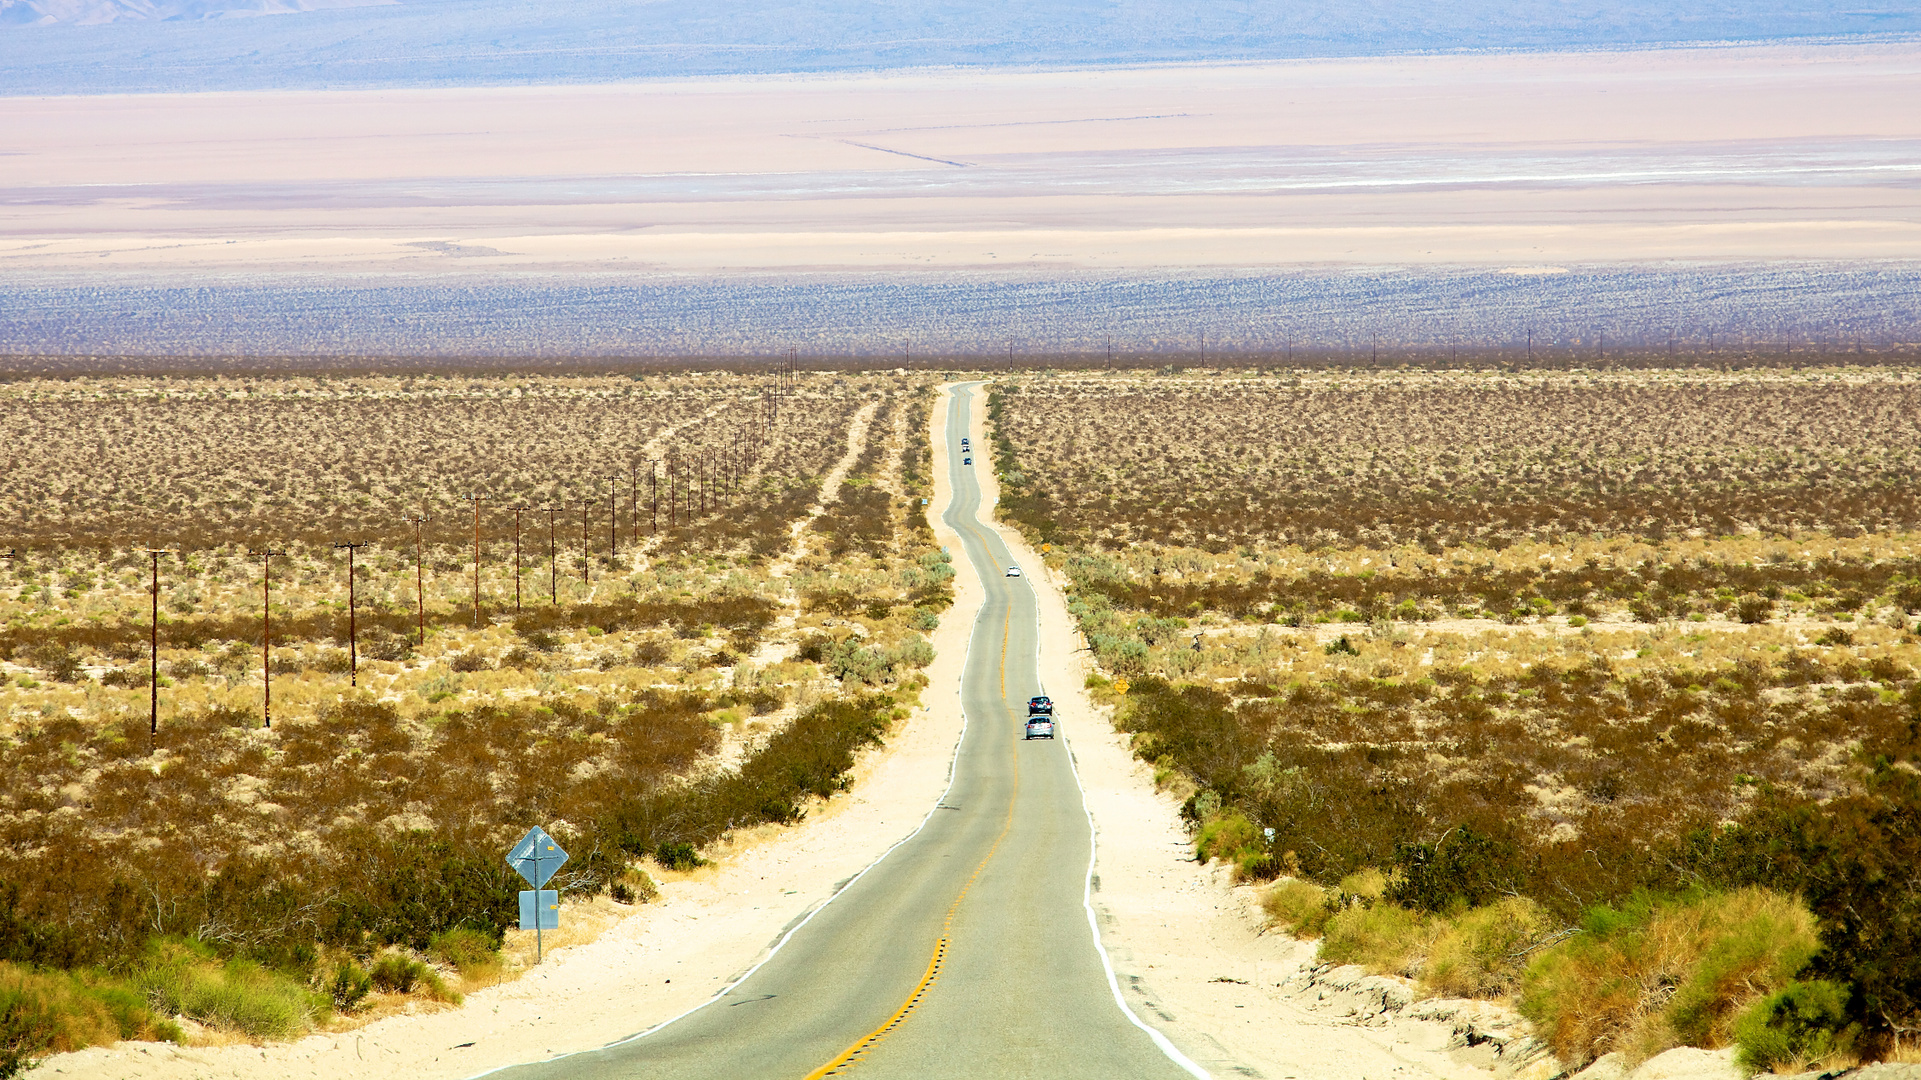 Straight down to Mojave